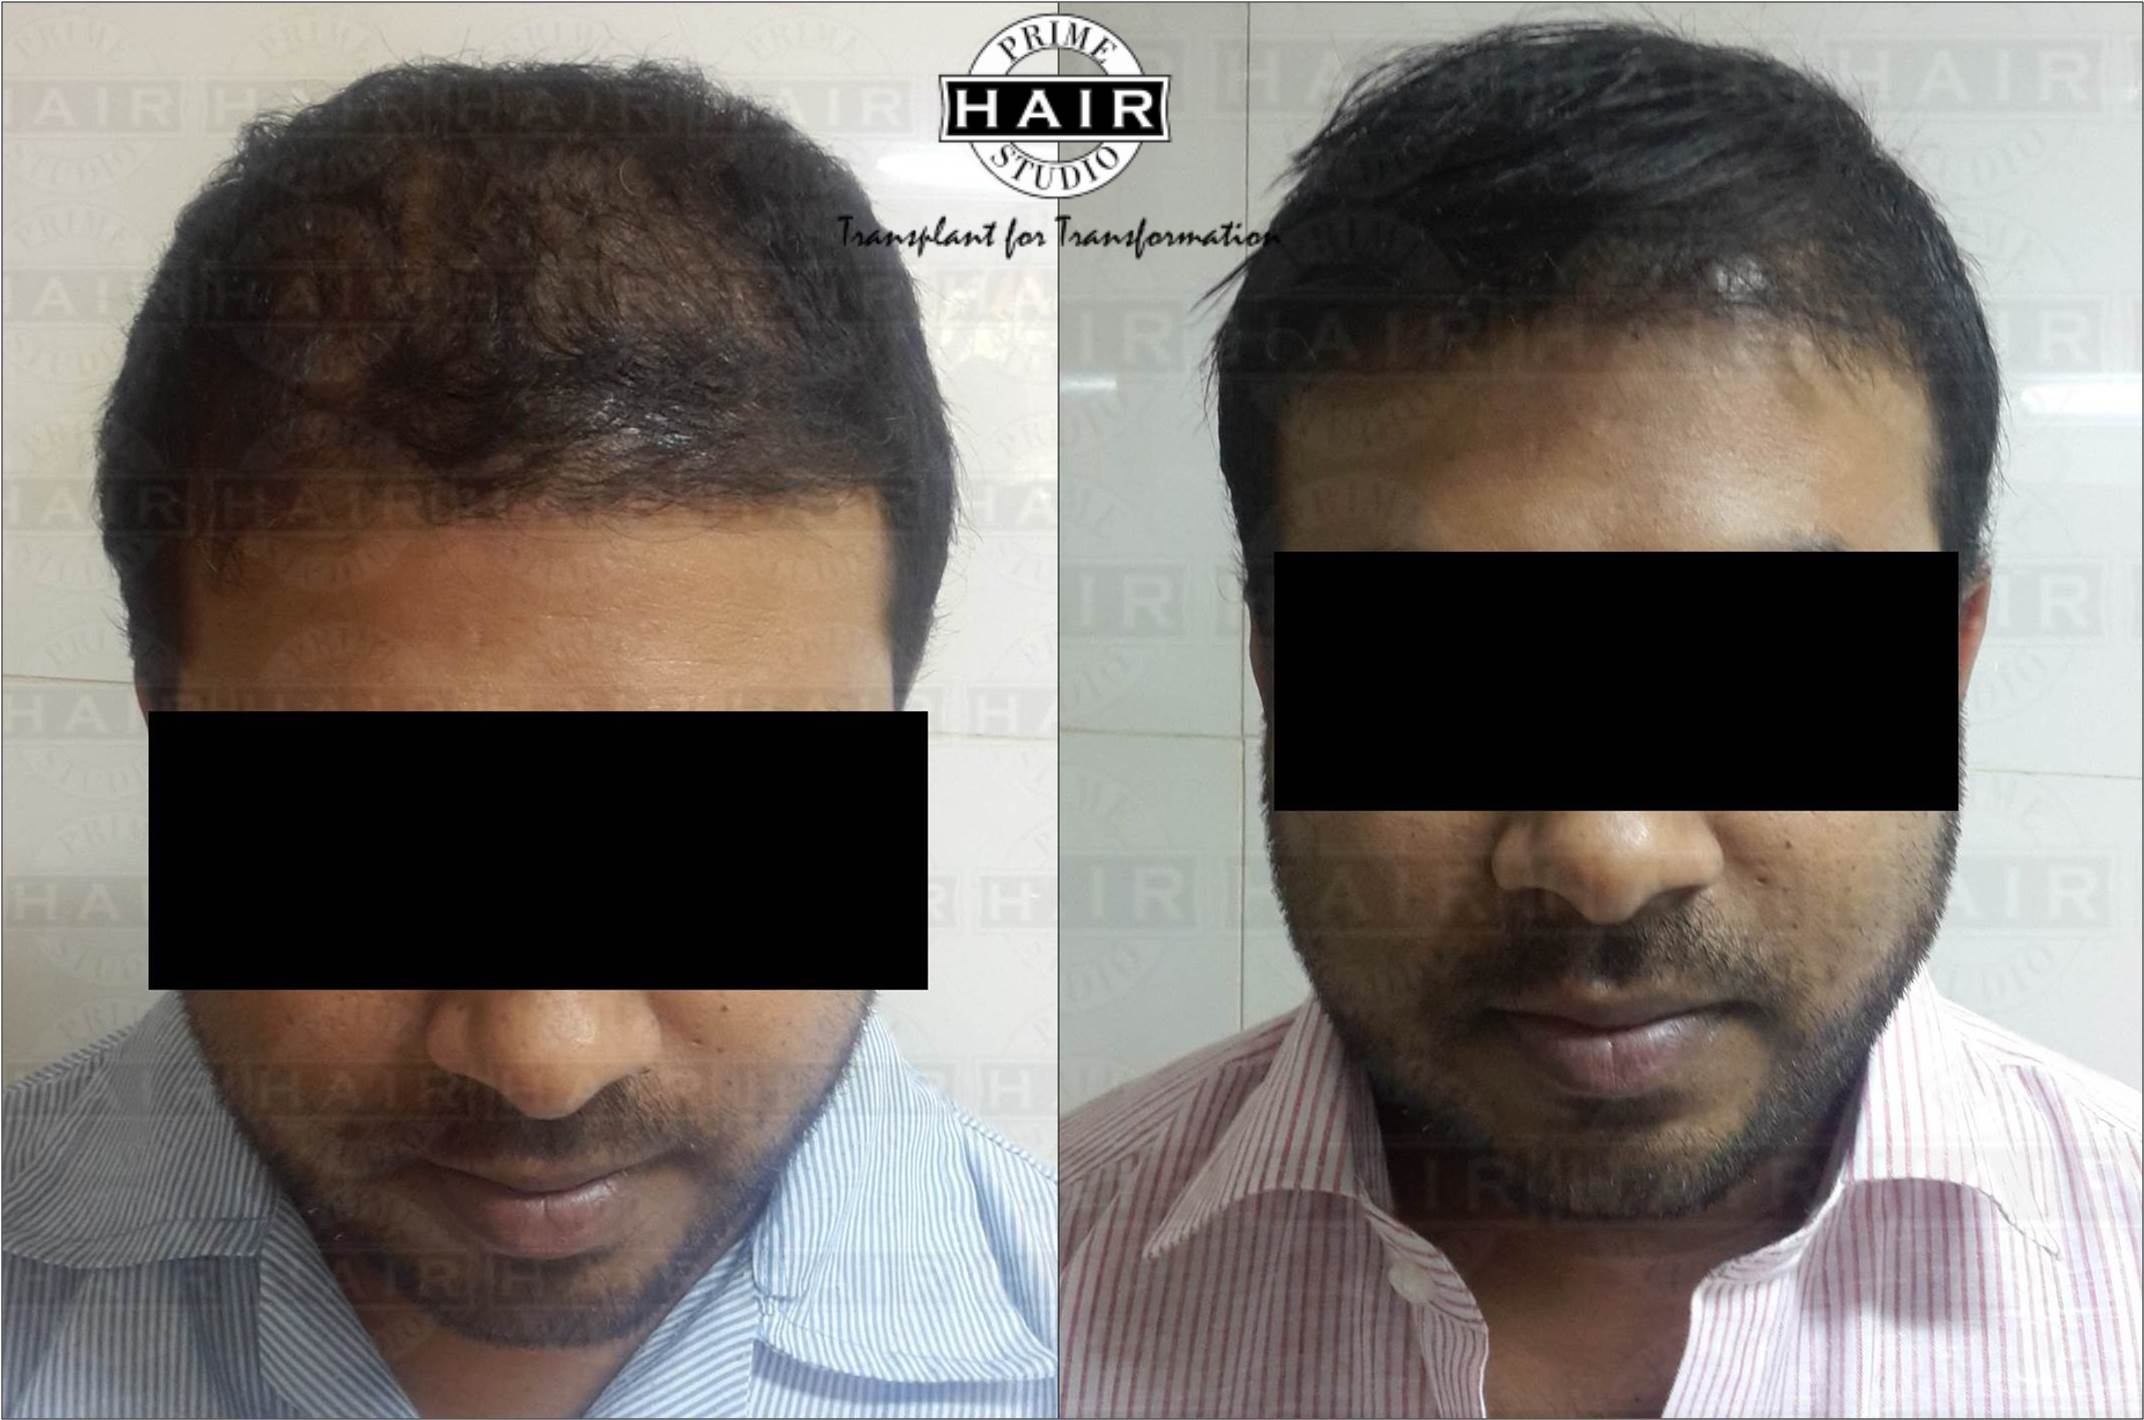 When to opt for Biofibre synthetic Hair Implant for Hair Restoration